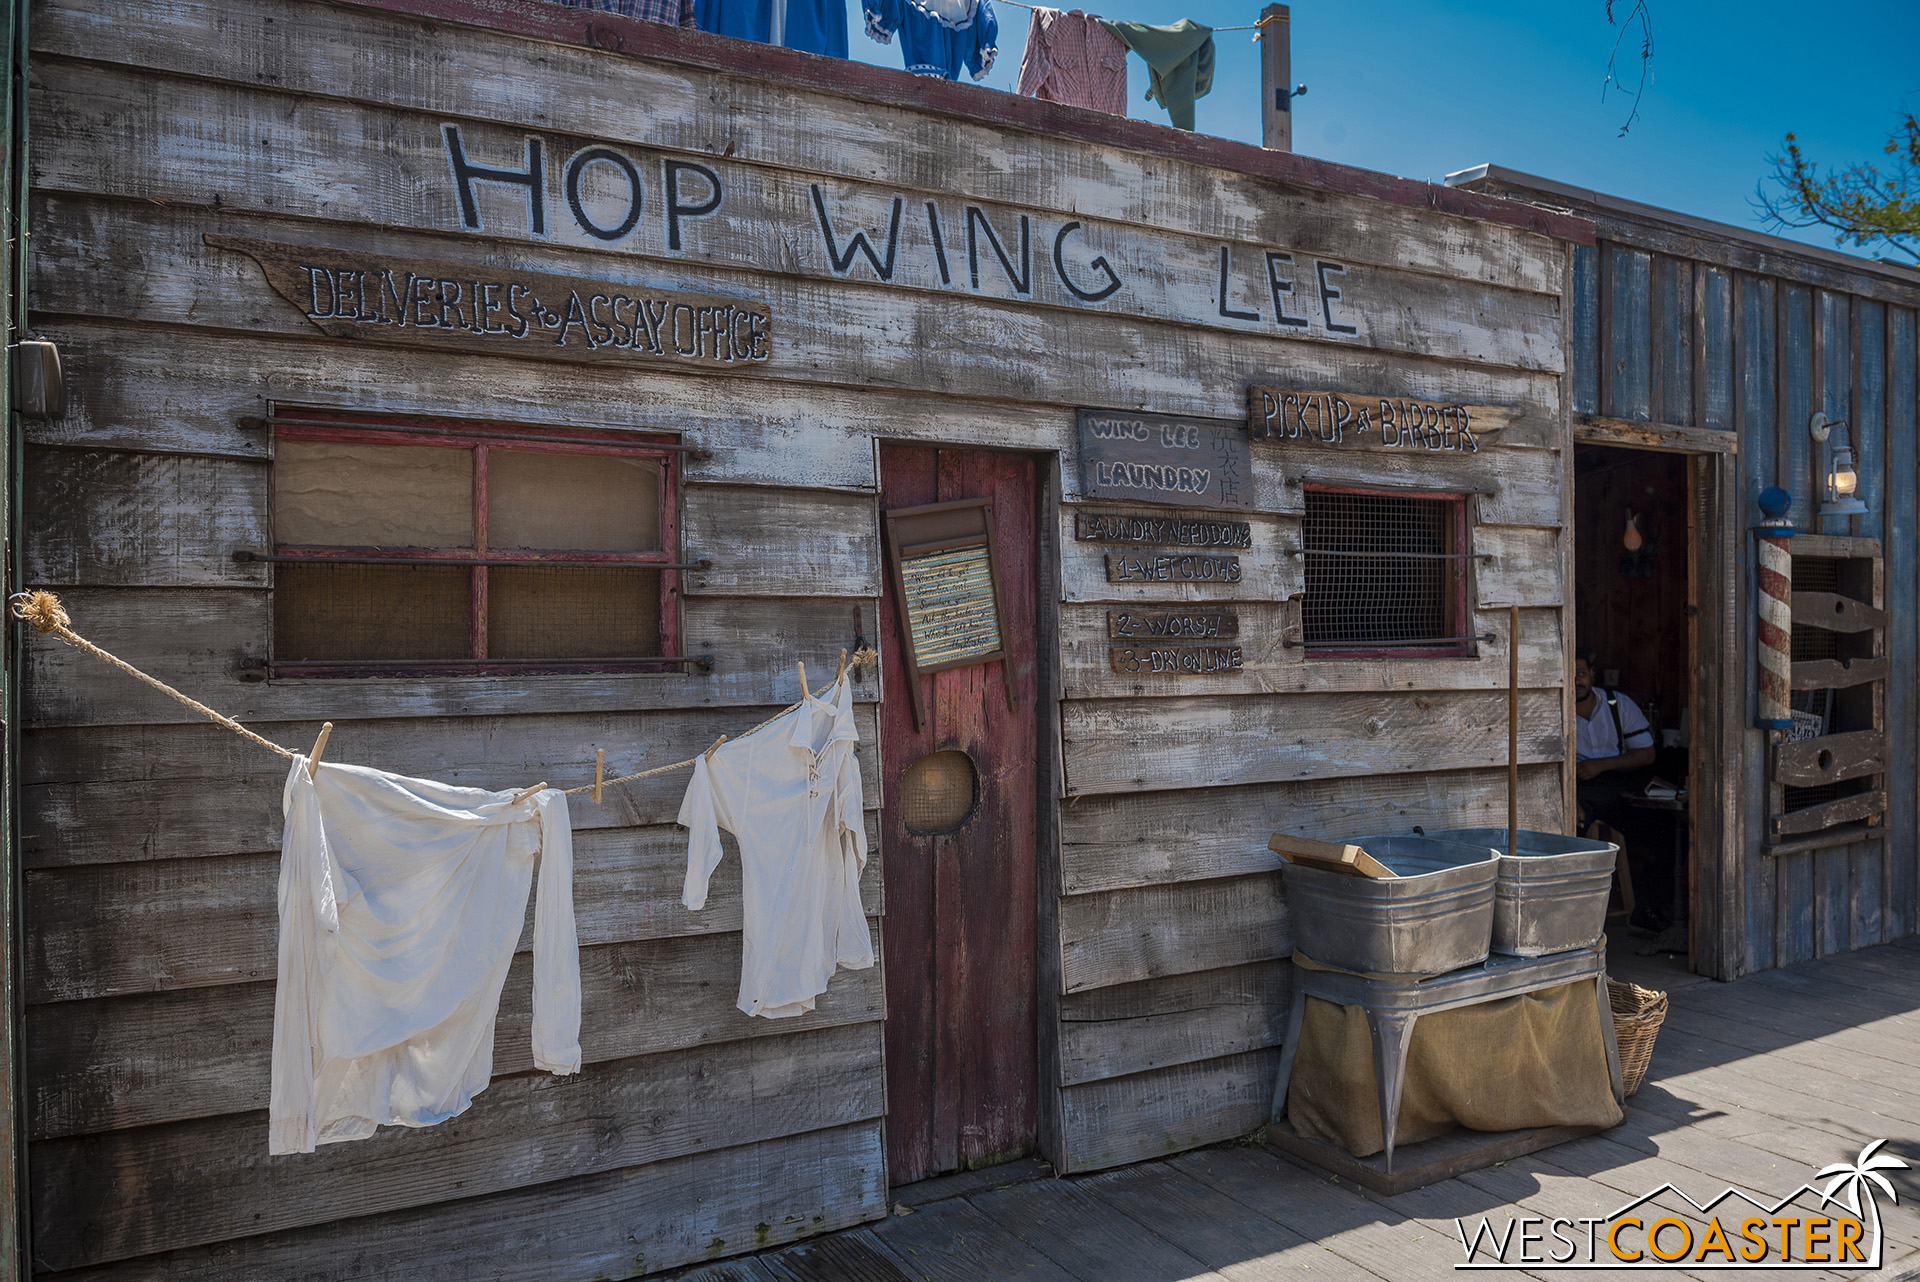 Except for Hop Wing Lee's.  The town laundromat is once again closed despite the fortunes at the end of last season.